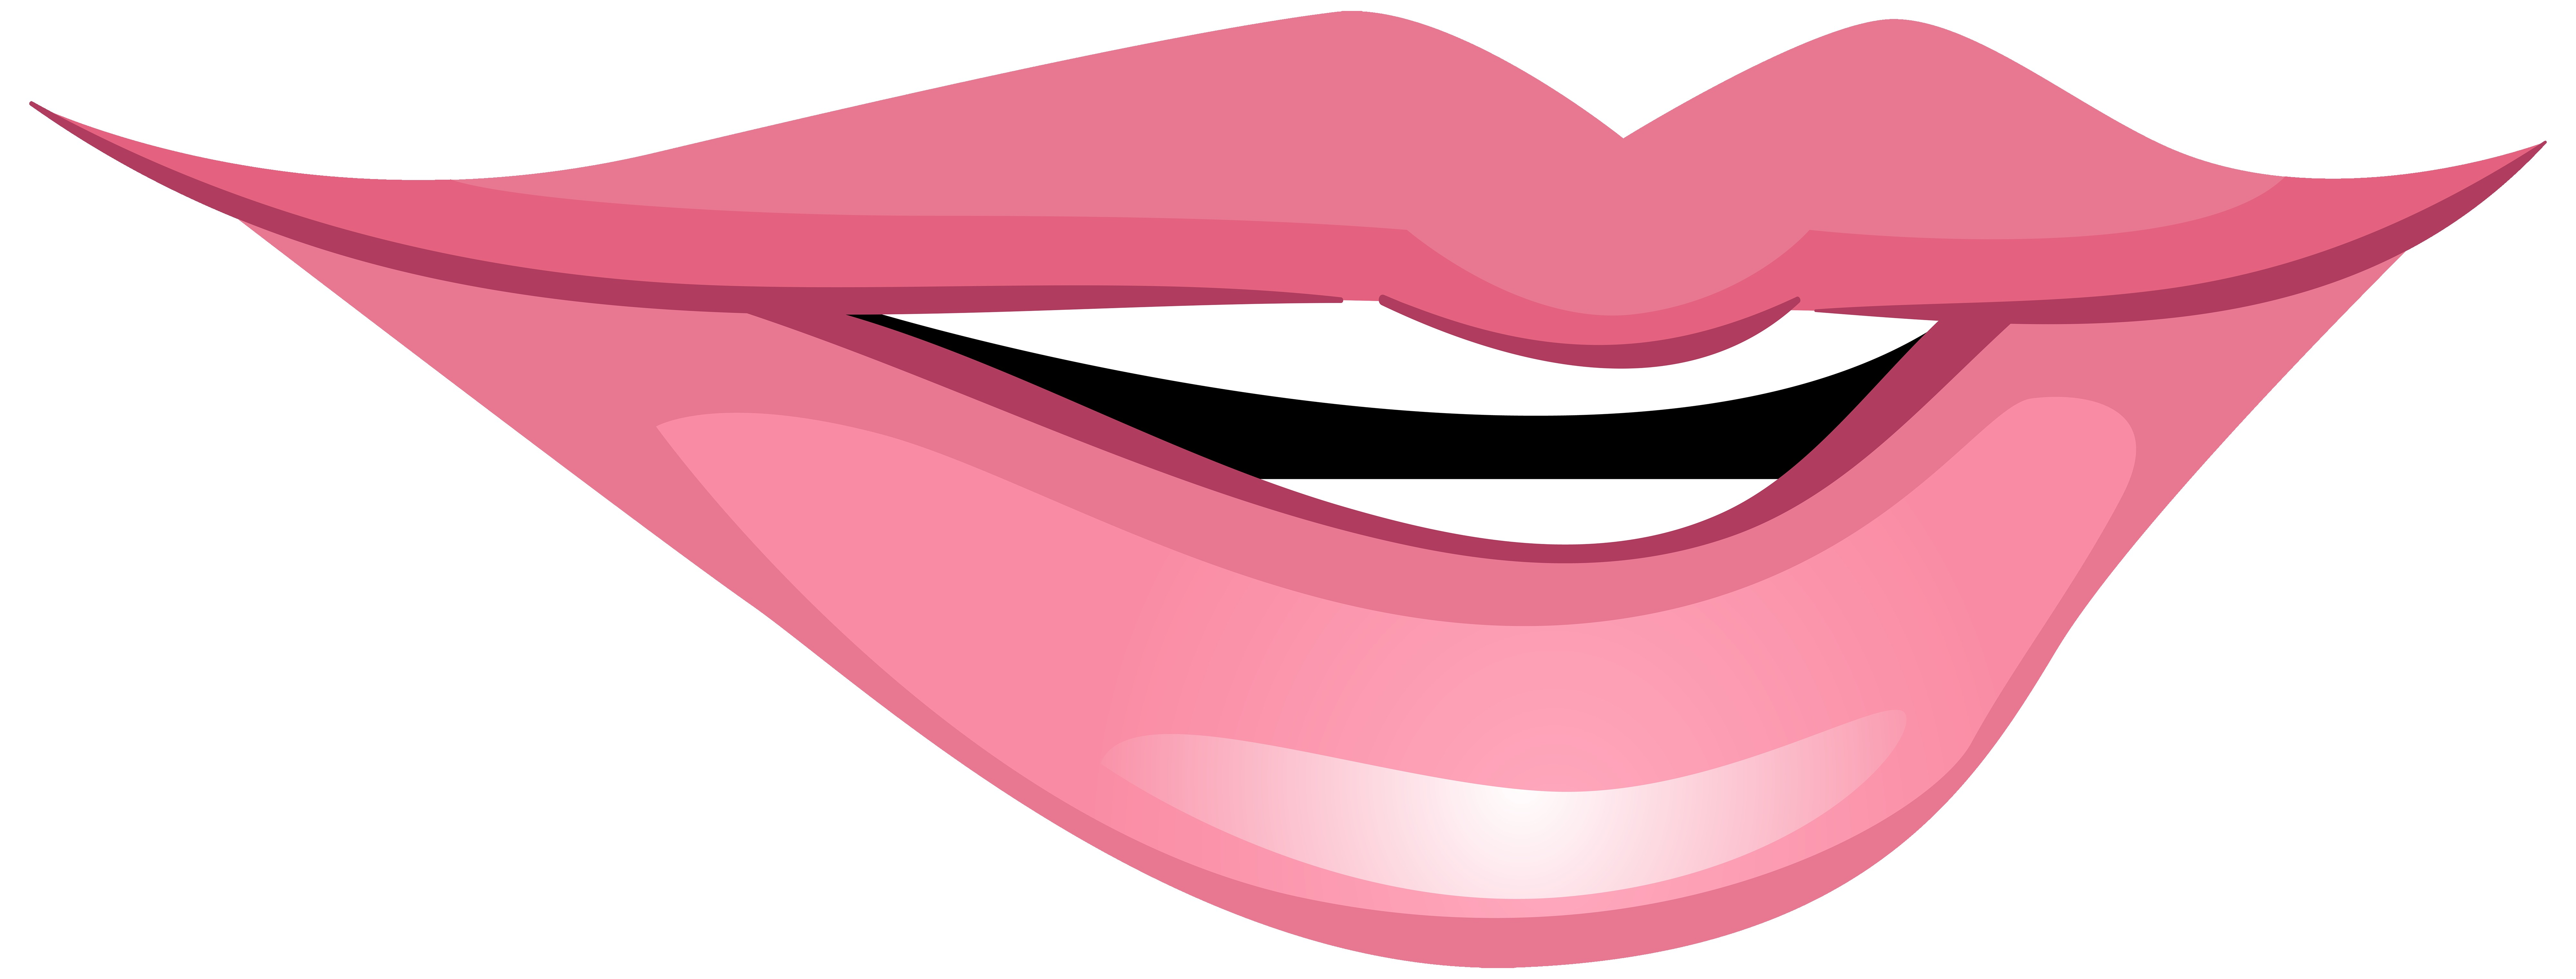 8000x3040 Lips With Red Lipstick Free Clip Art Showy Pink Lip